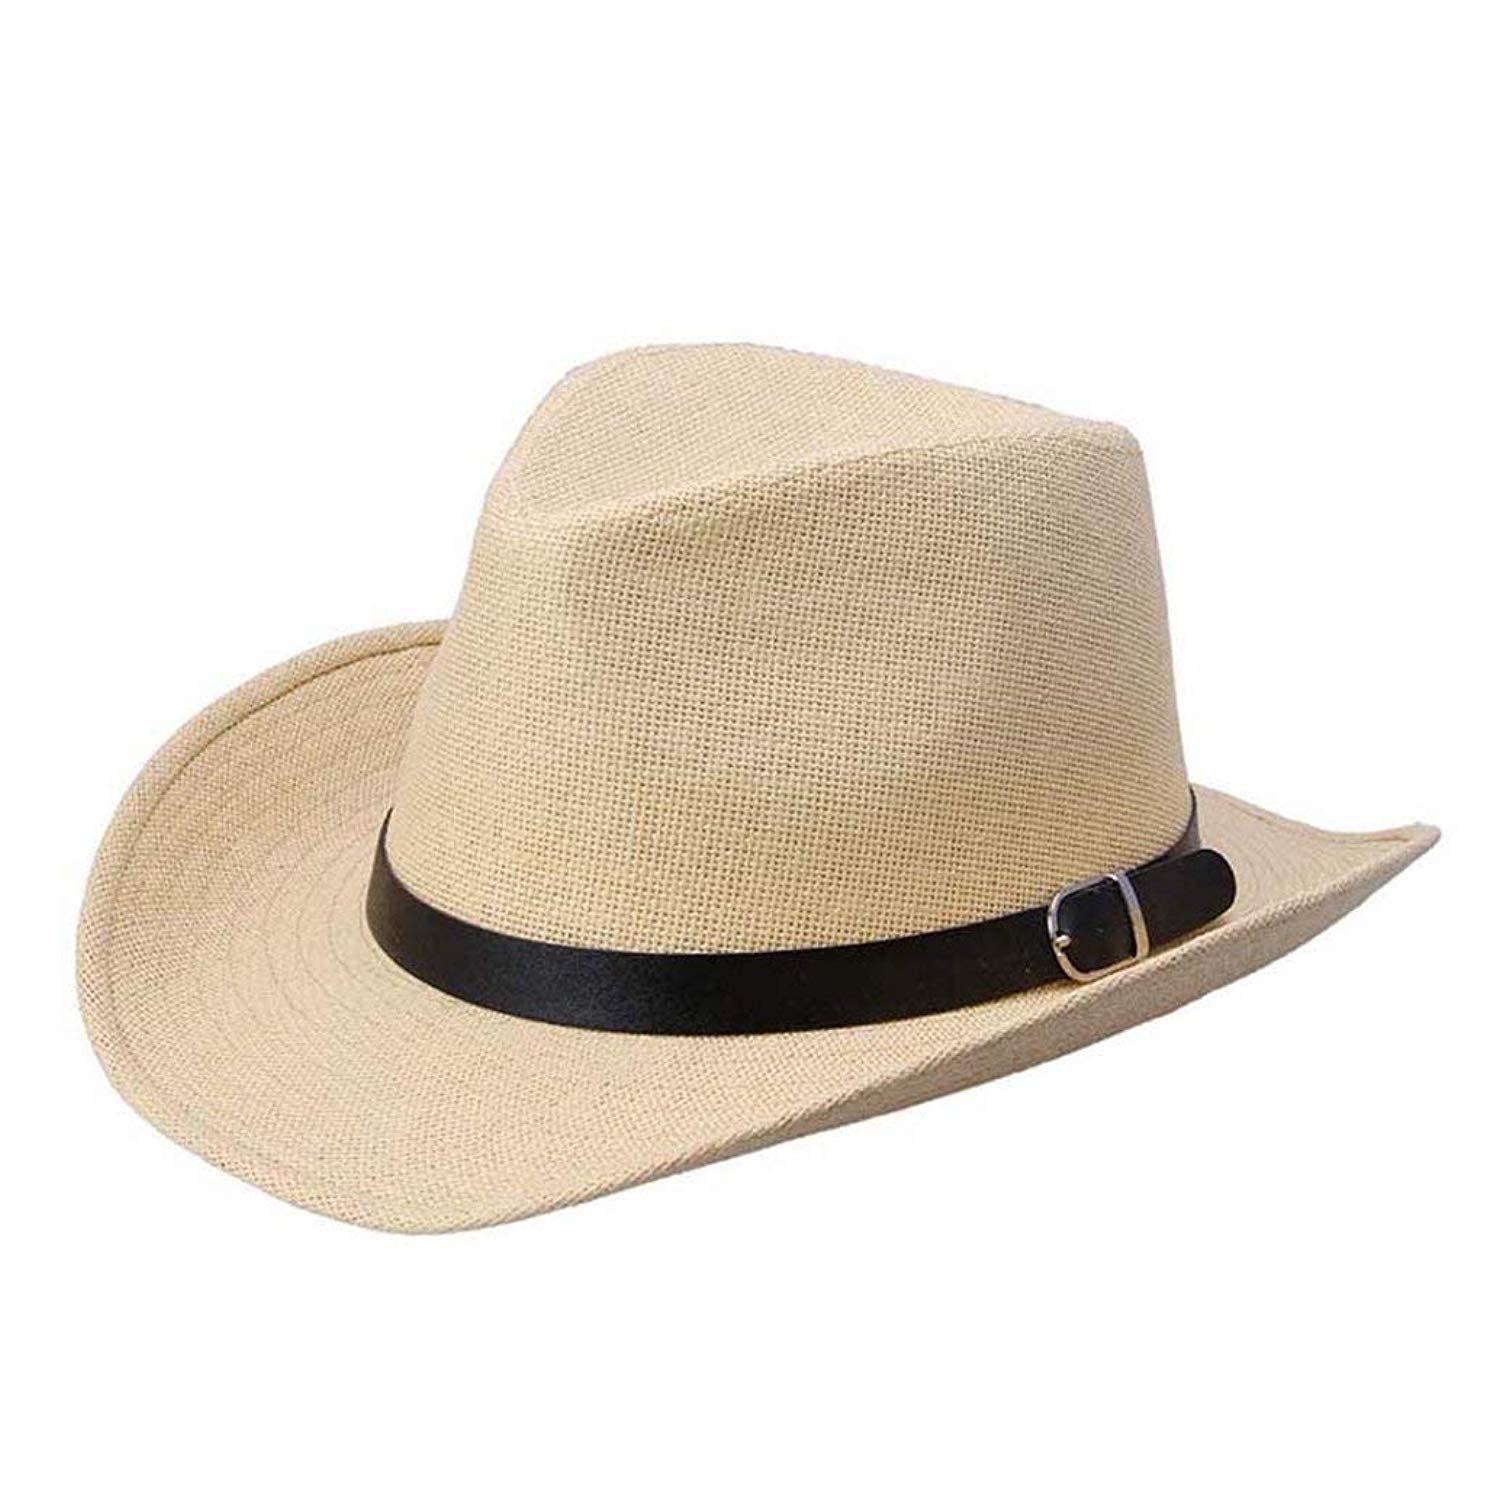 Straw Hat Fedora - Panama Trilby Style Packable Crushable Summer Sun Mens  Ladies a95f84414c5f